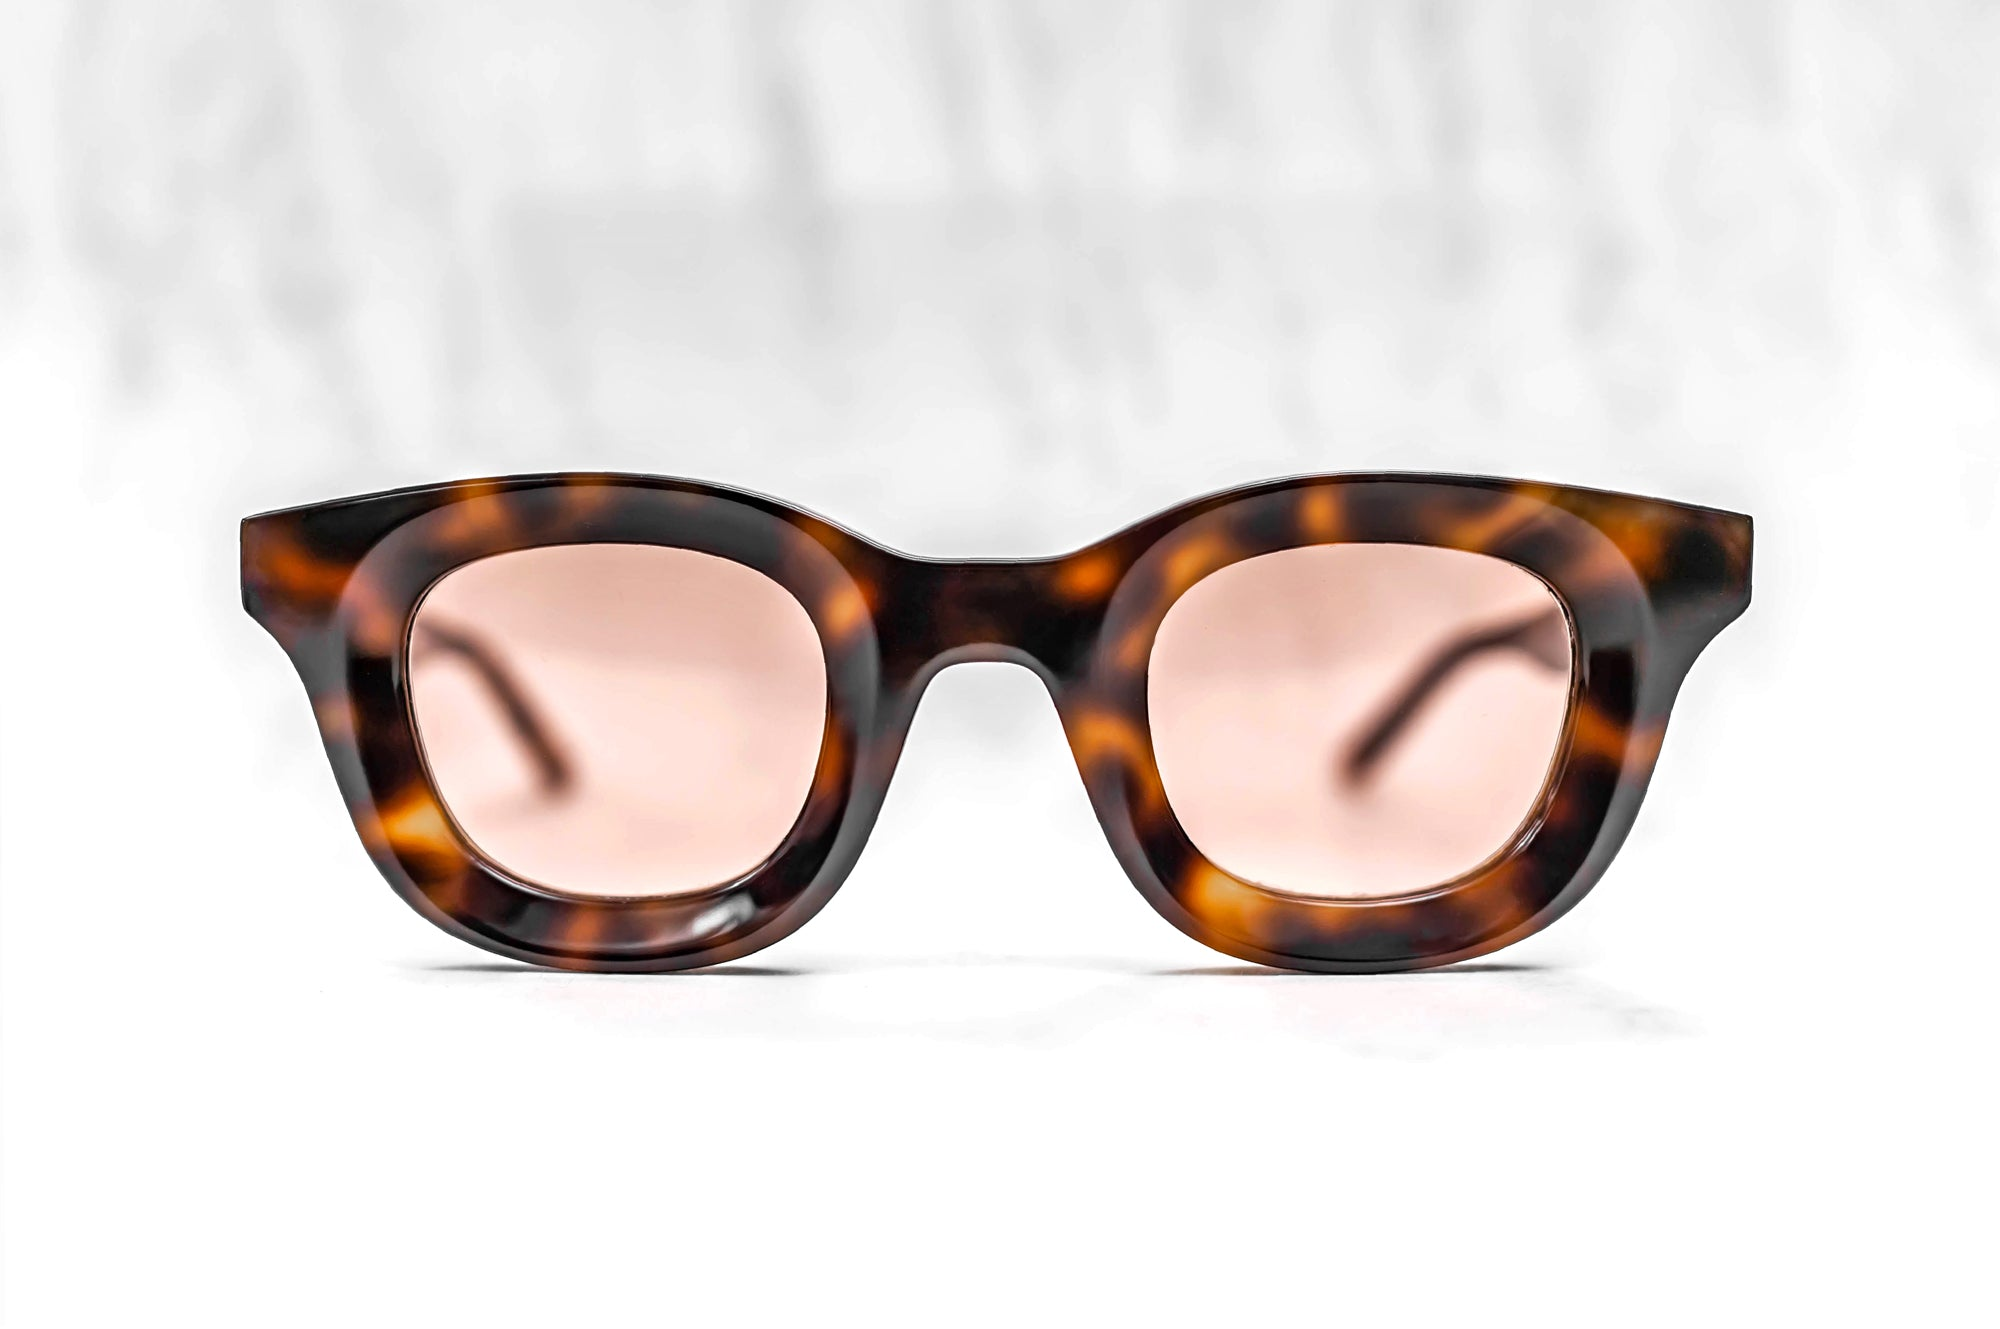 RHUDE x Thierry Lasry - Rhodeo Sunglasses in Tortoise Shell w/ Pink Lenses (610)